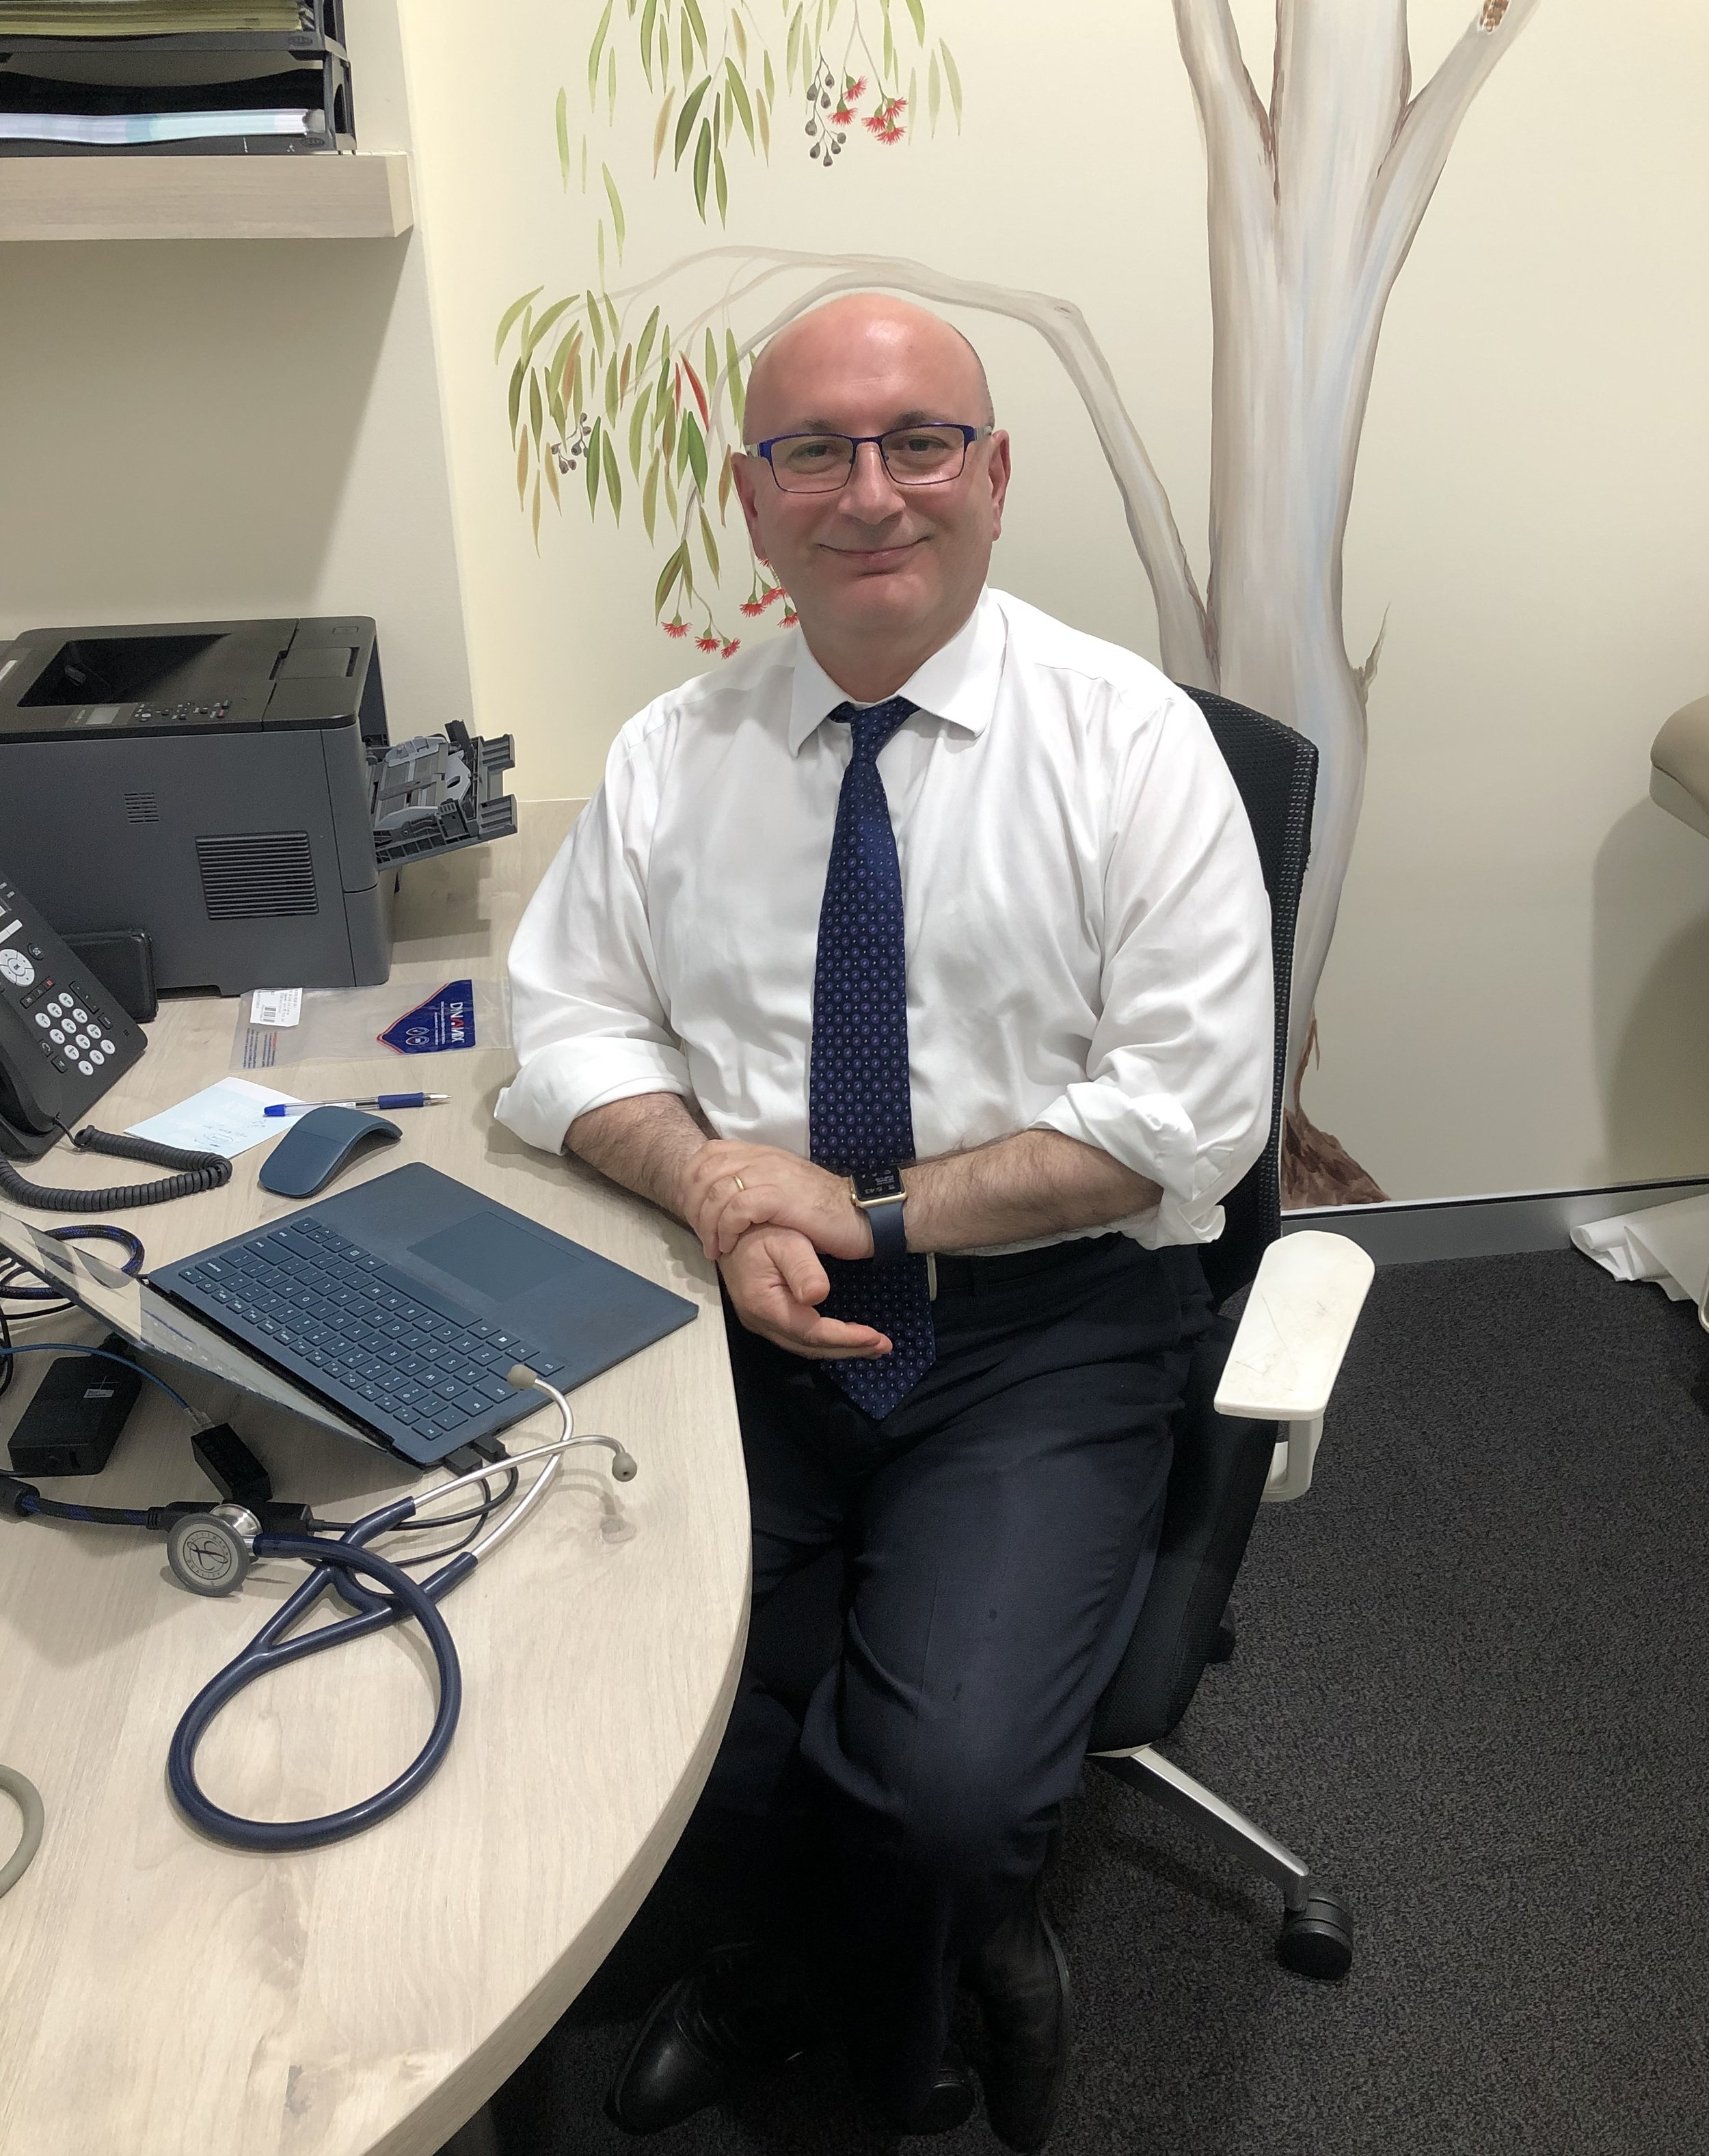 Dr Walid Jammal - MBBS FRACGP DCH M. Health LawClinical Lecturer University of SydneyConjoint Senior Lecturer, School of Medicine, Western Sydney UniversityDr Jammal started the practice with Madeline. His interests include paediatrics, men's health, ethics, health law, and quality and safety in health care. He also has a Masters of Health Law. He has a keen interest in health economics and models of care in general practice, including the Patient Centred Medical Home framework. He sits on various MBS review committees, is a member of the evaluation subcommittee of the Medicare Services Advisory Committee and sits on review committees for Therapeutic Guidelines. He is National Clinical Champion for Health Care Homes. He was RACGP NSW GP of year in 2017.